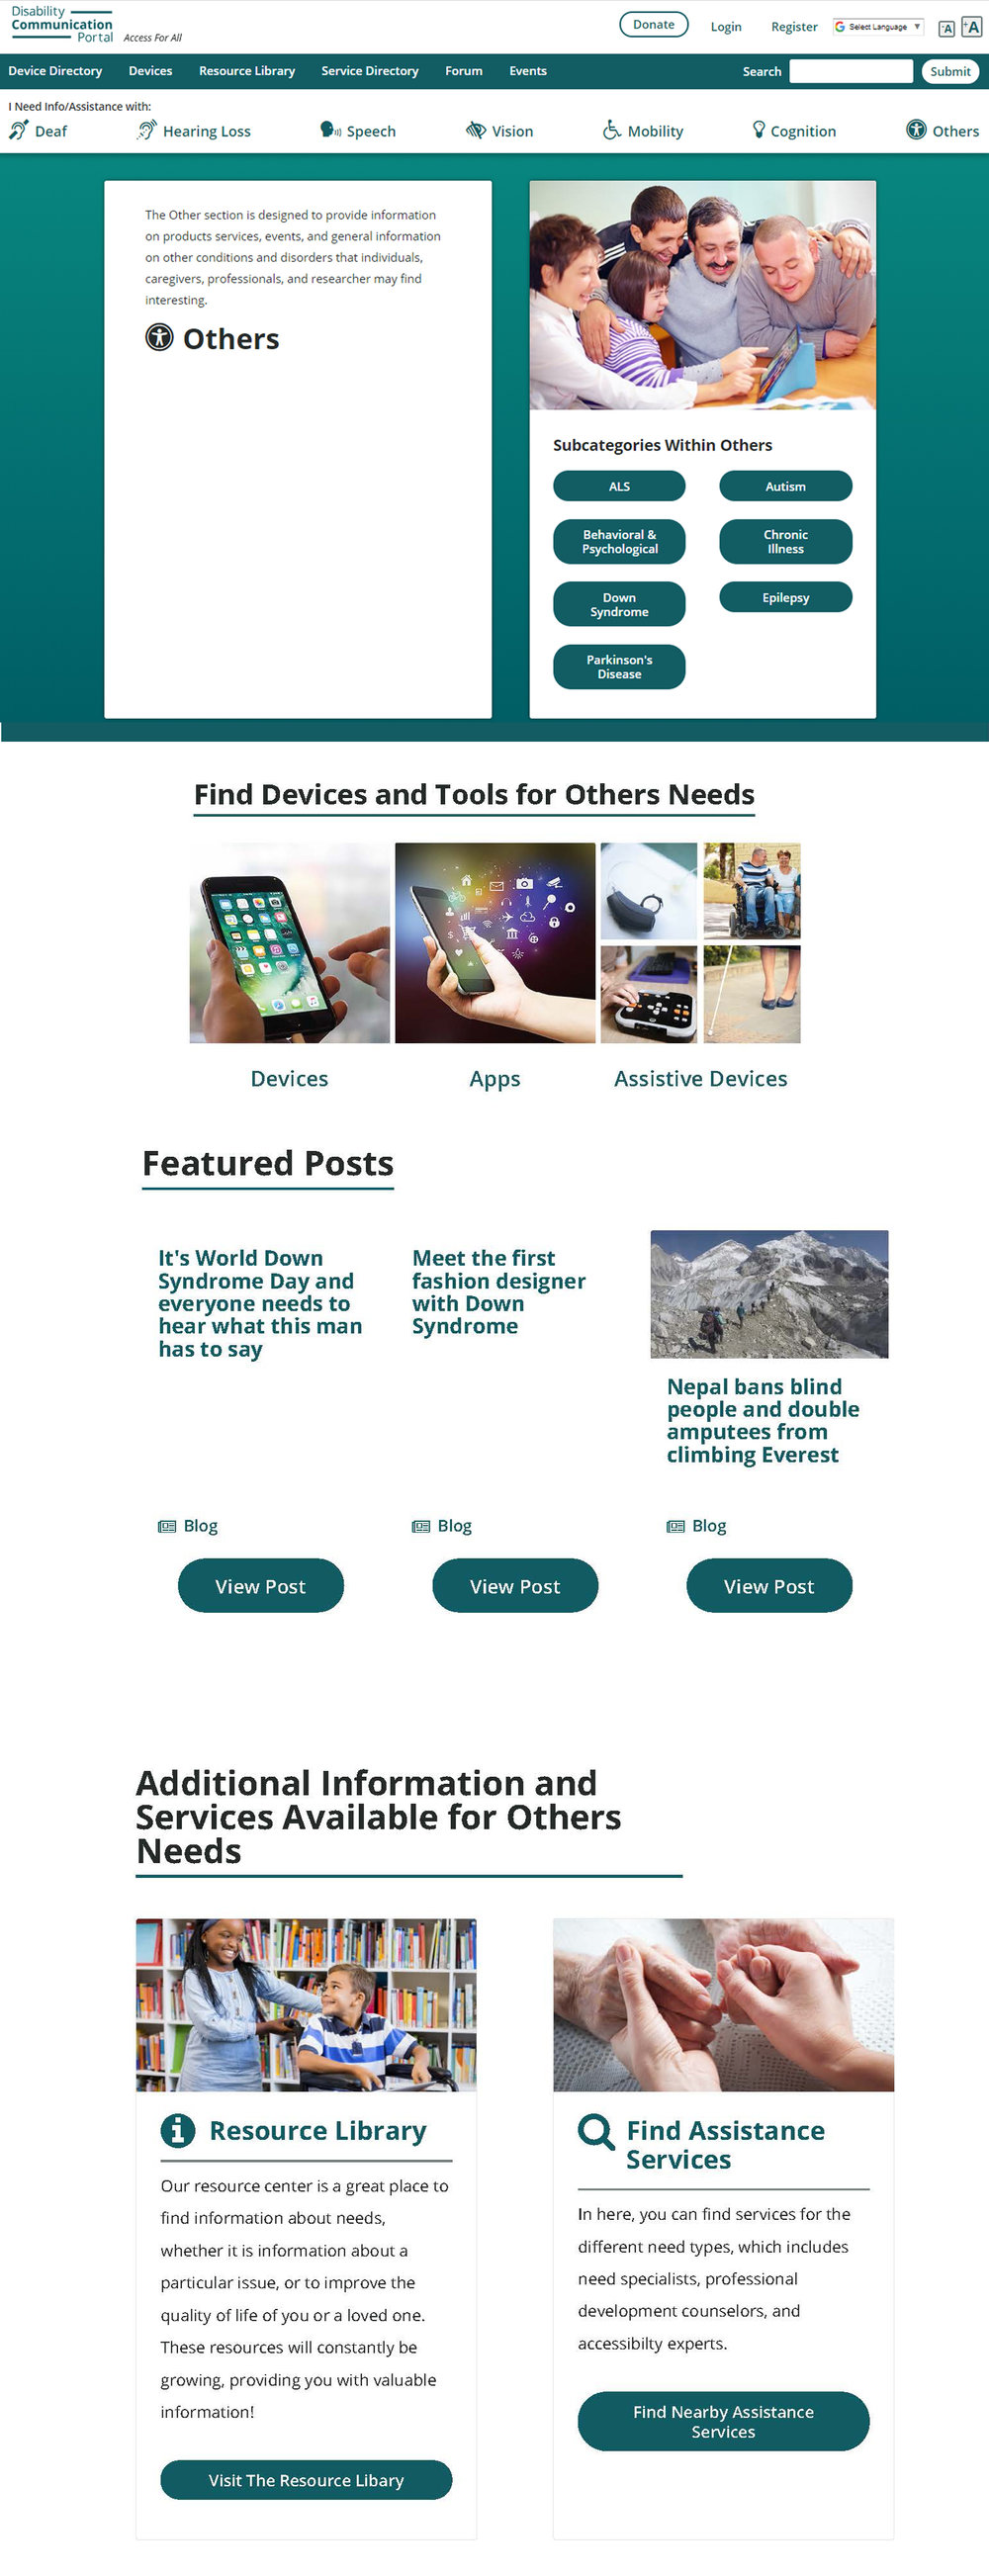 Example 2: The main category landing page - This is one of the seven main disability categories pages. All the subcategories are accessible from here, along with featured posts under the same category.